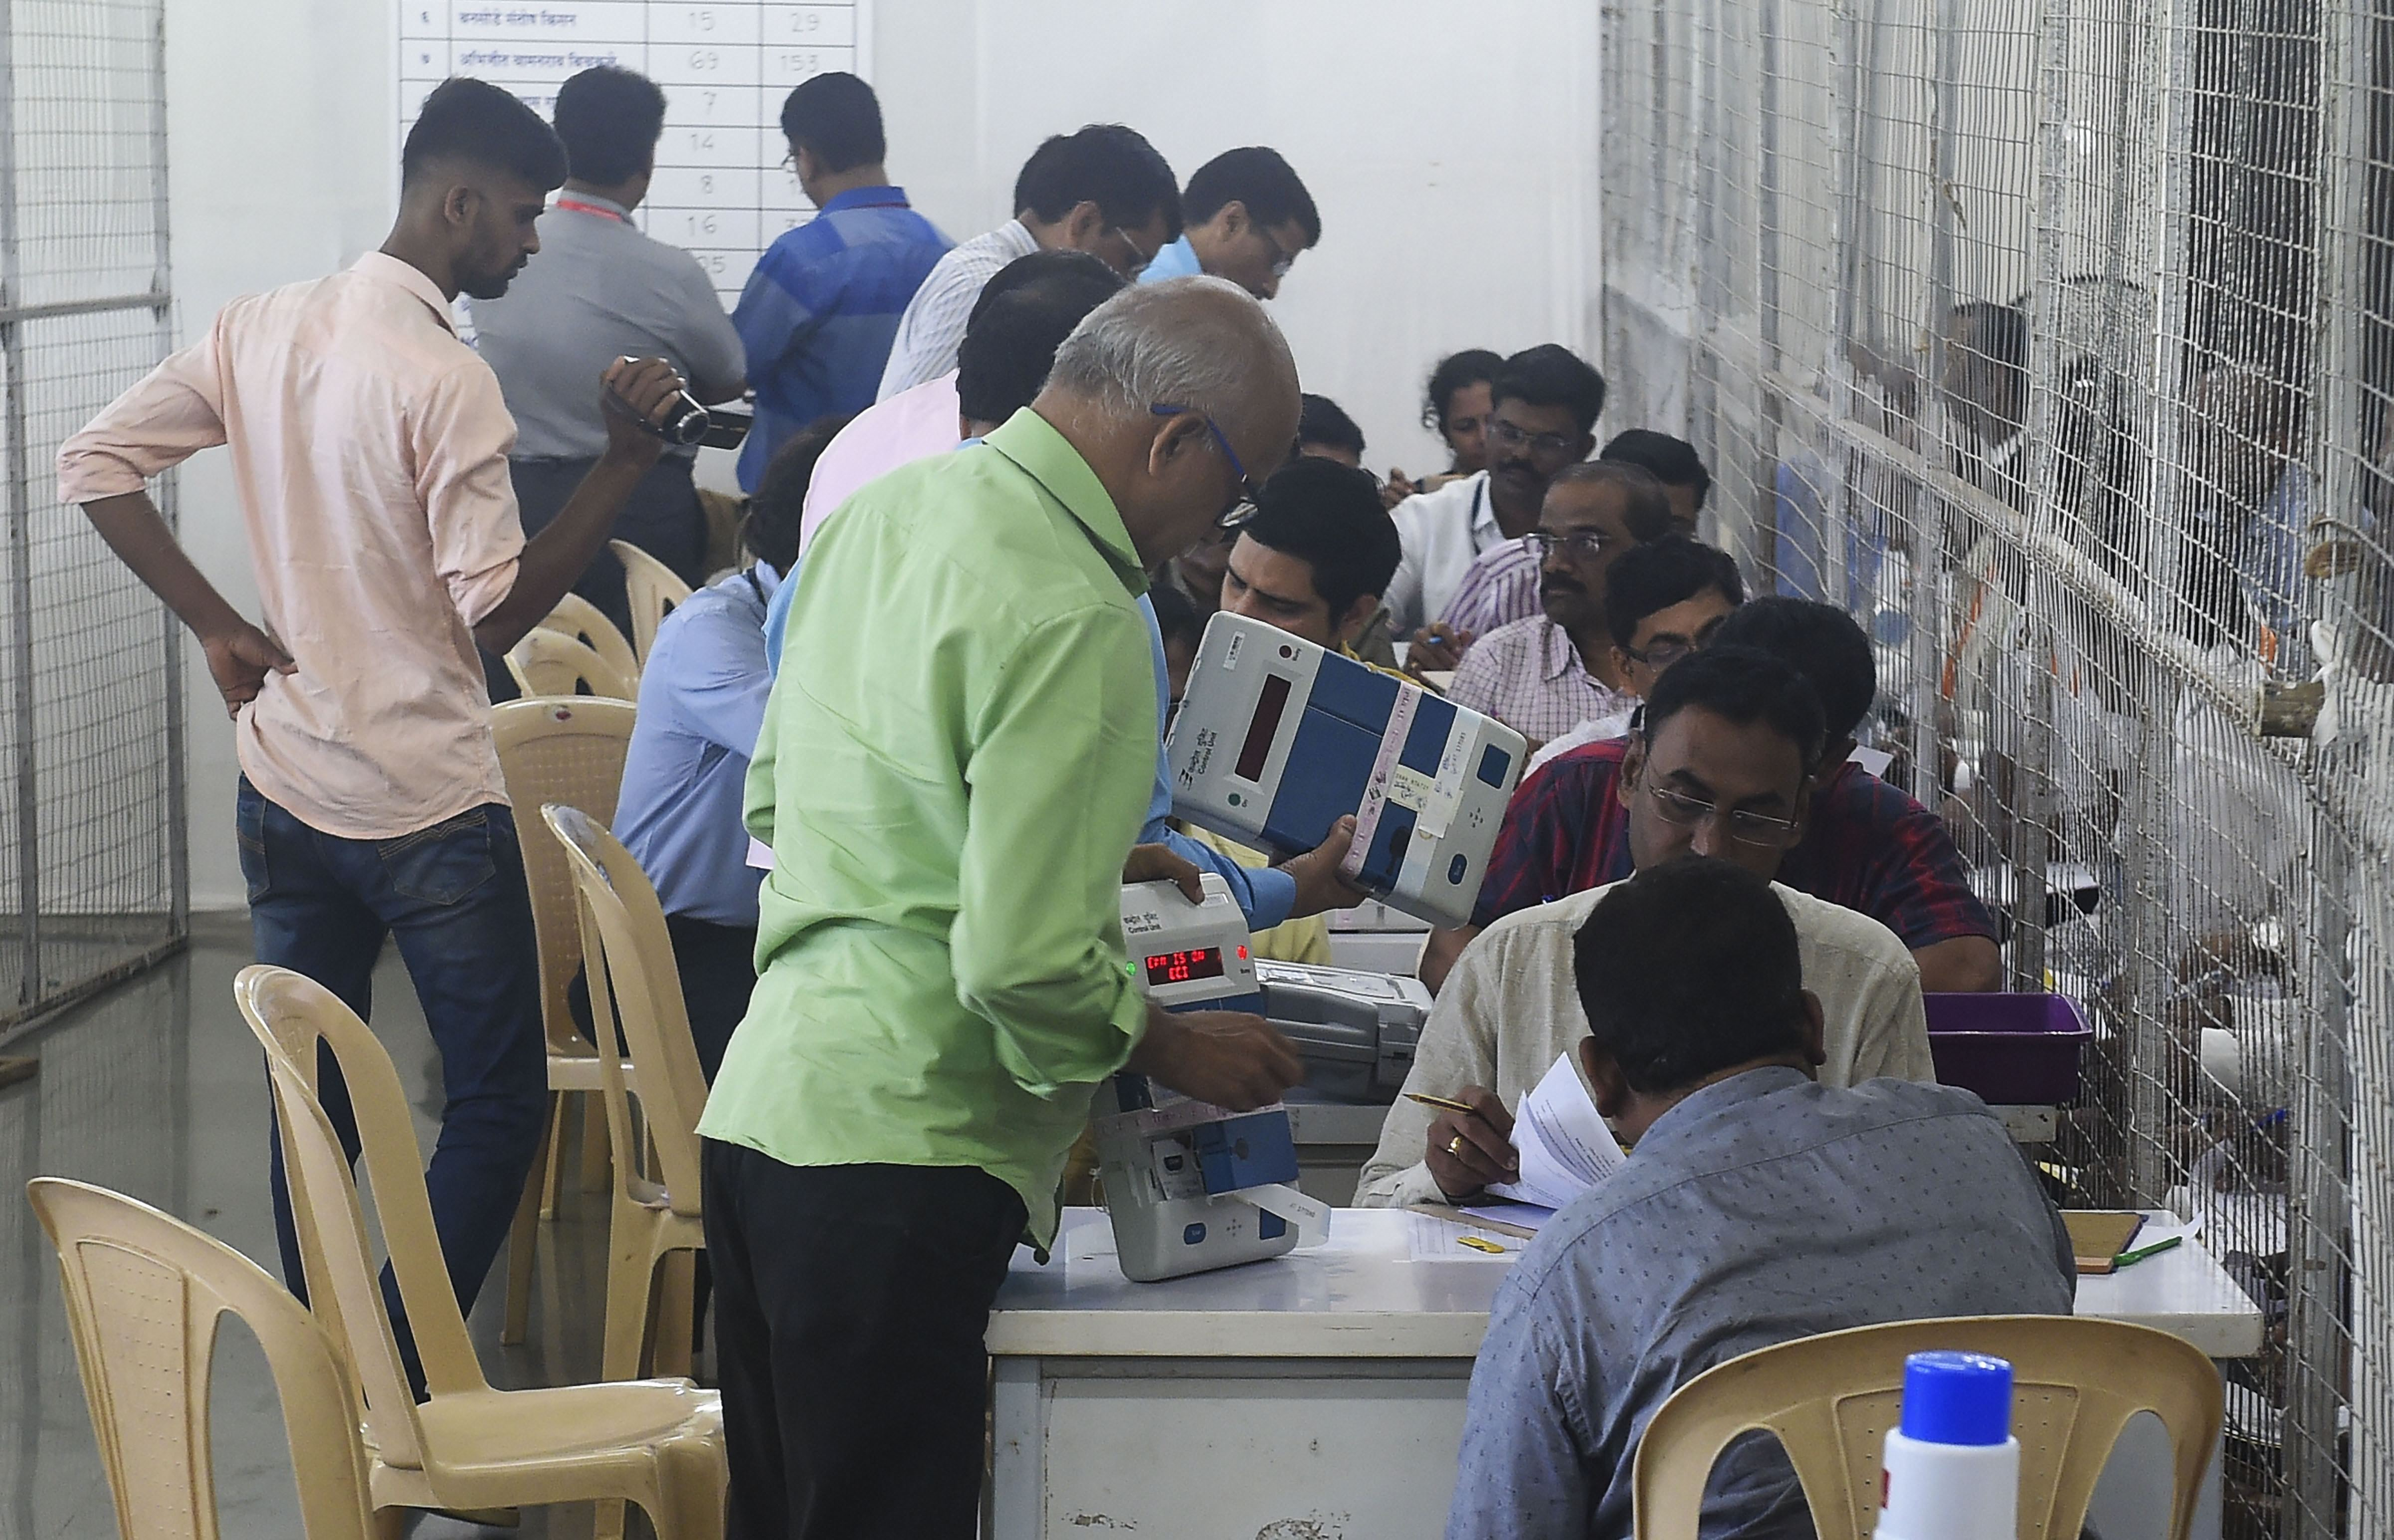 Election officials count of votes for the Maharashtra Assembly elections in Worli, Mumbai, on October 24.